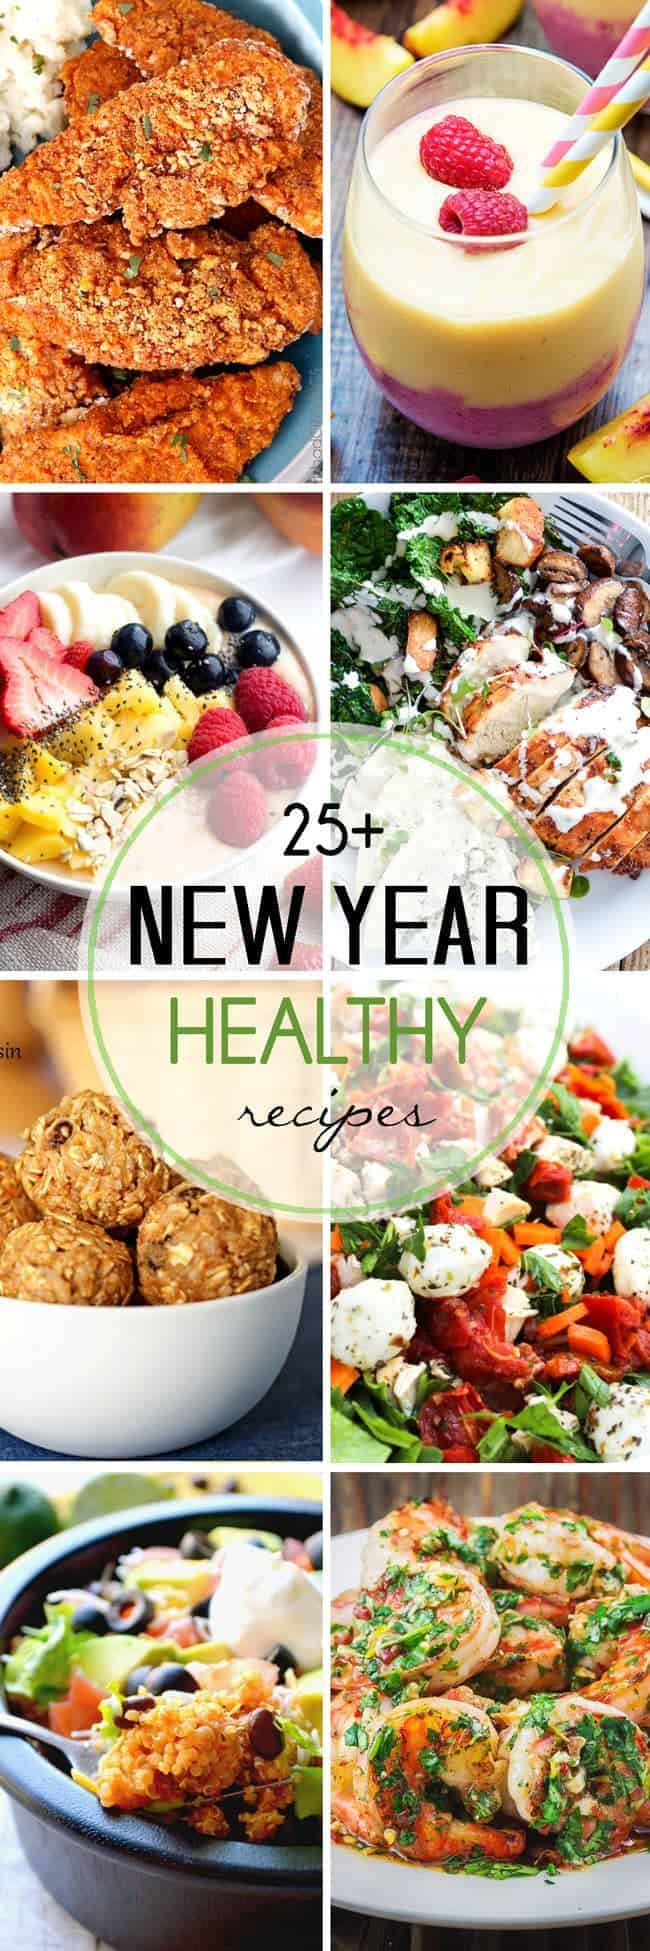 Over 25 Healthy Recipes from Your Favorite Bloggers. All healthy recipes together in one spot so you can get started on your New Years Resolutions and Goals right away!